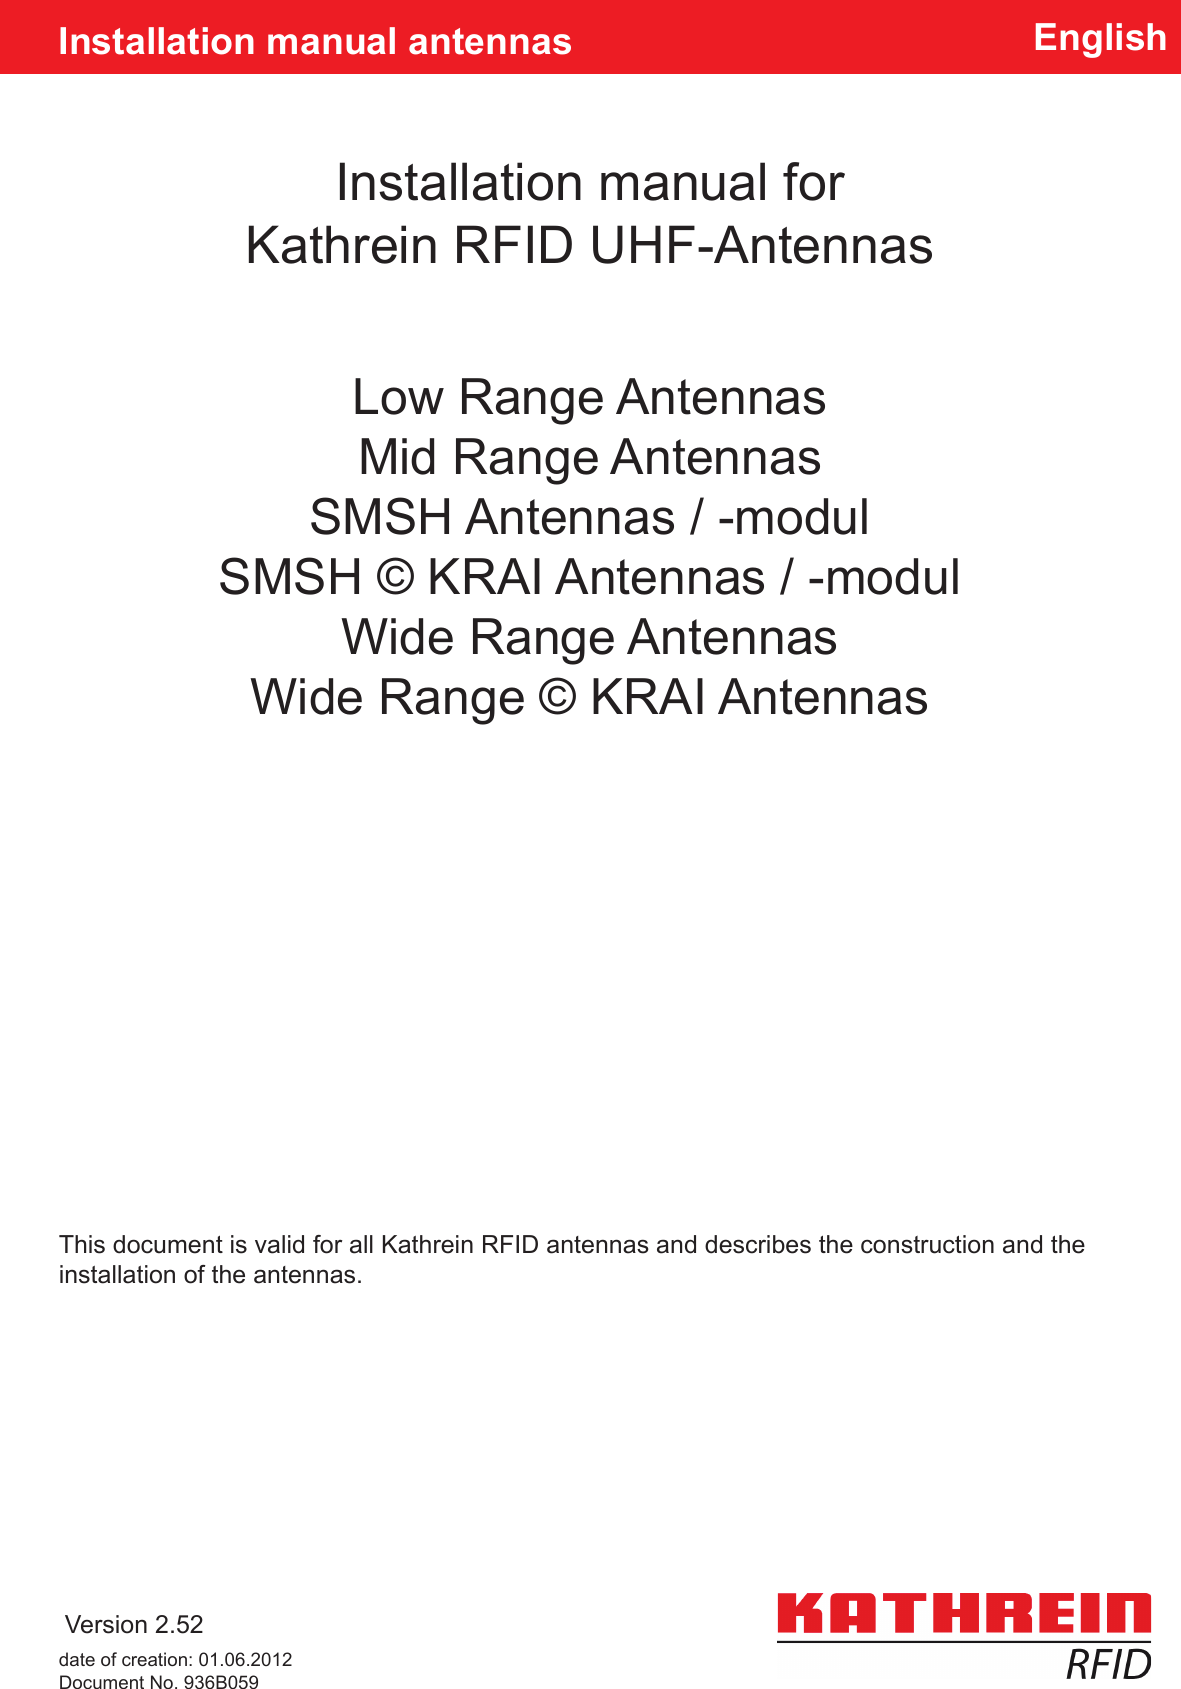 EnglishInstallation manual forKathrein RFID UHF-AntennasInstallation manual antennasVersion 2.52This document is valid for all Kathrein RFID antennas and describes the construction and the installation of the antennas.Low Range AntennasMid Range AntennasSMSH Antennas / -modulSMSH © KRAI Antennas / -modulWide Range AntennasWide Range © KRAI Antennasdate of creation: 01.06.2012Document No. 936B059